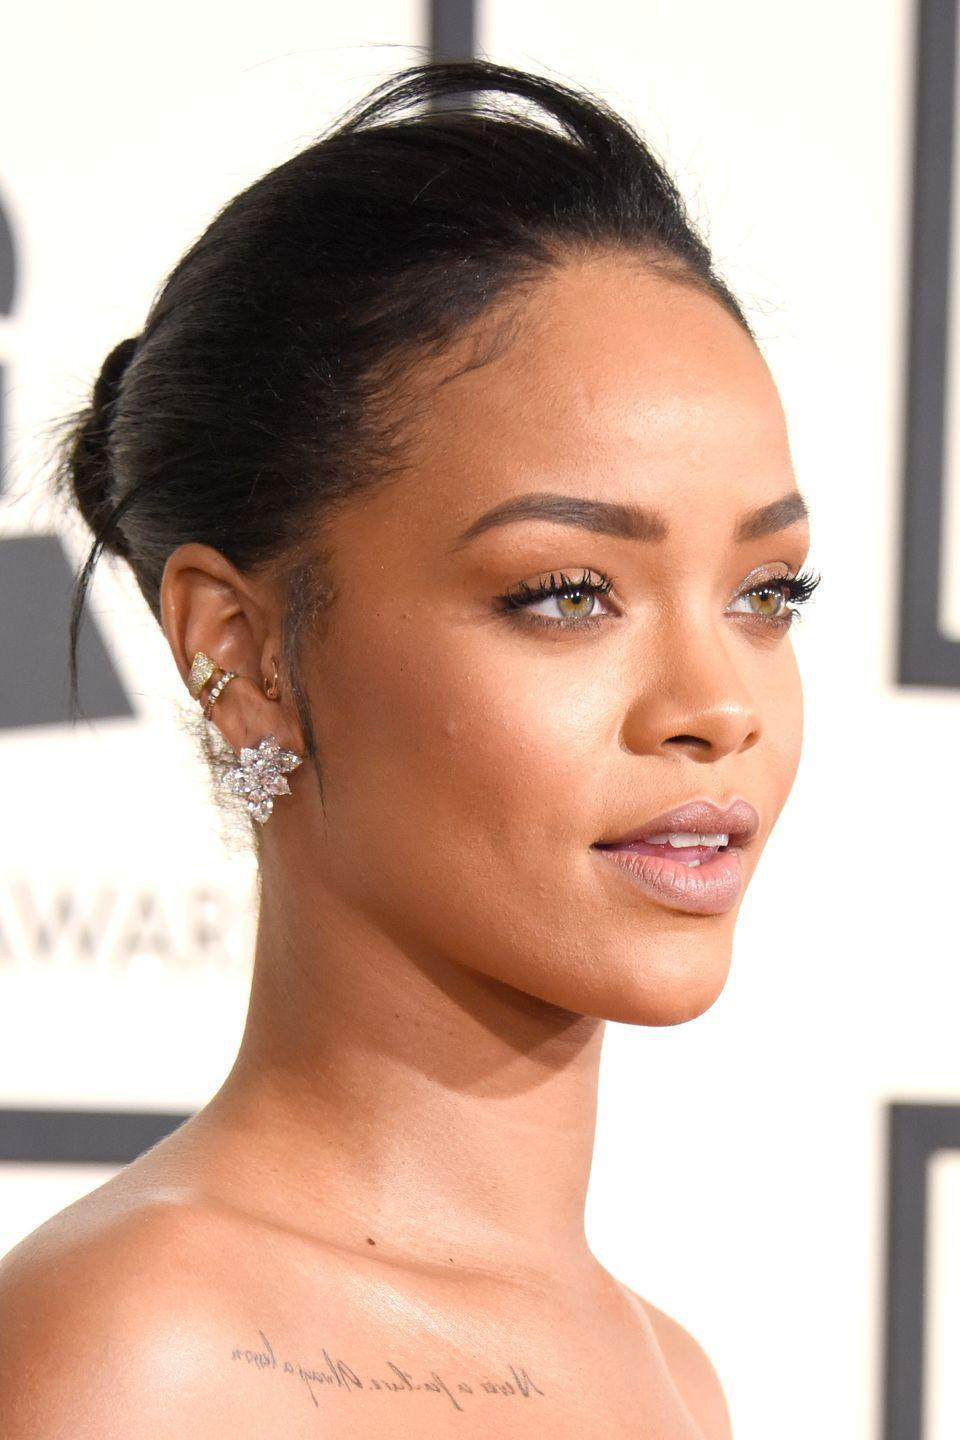 <p>Rihanna shows off two differing gold and diamond hoops in her outer conch piercings, which sit beautifully alongside the simple rose gold tragus hoop. </p>